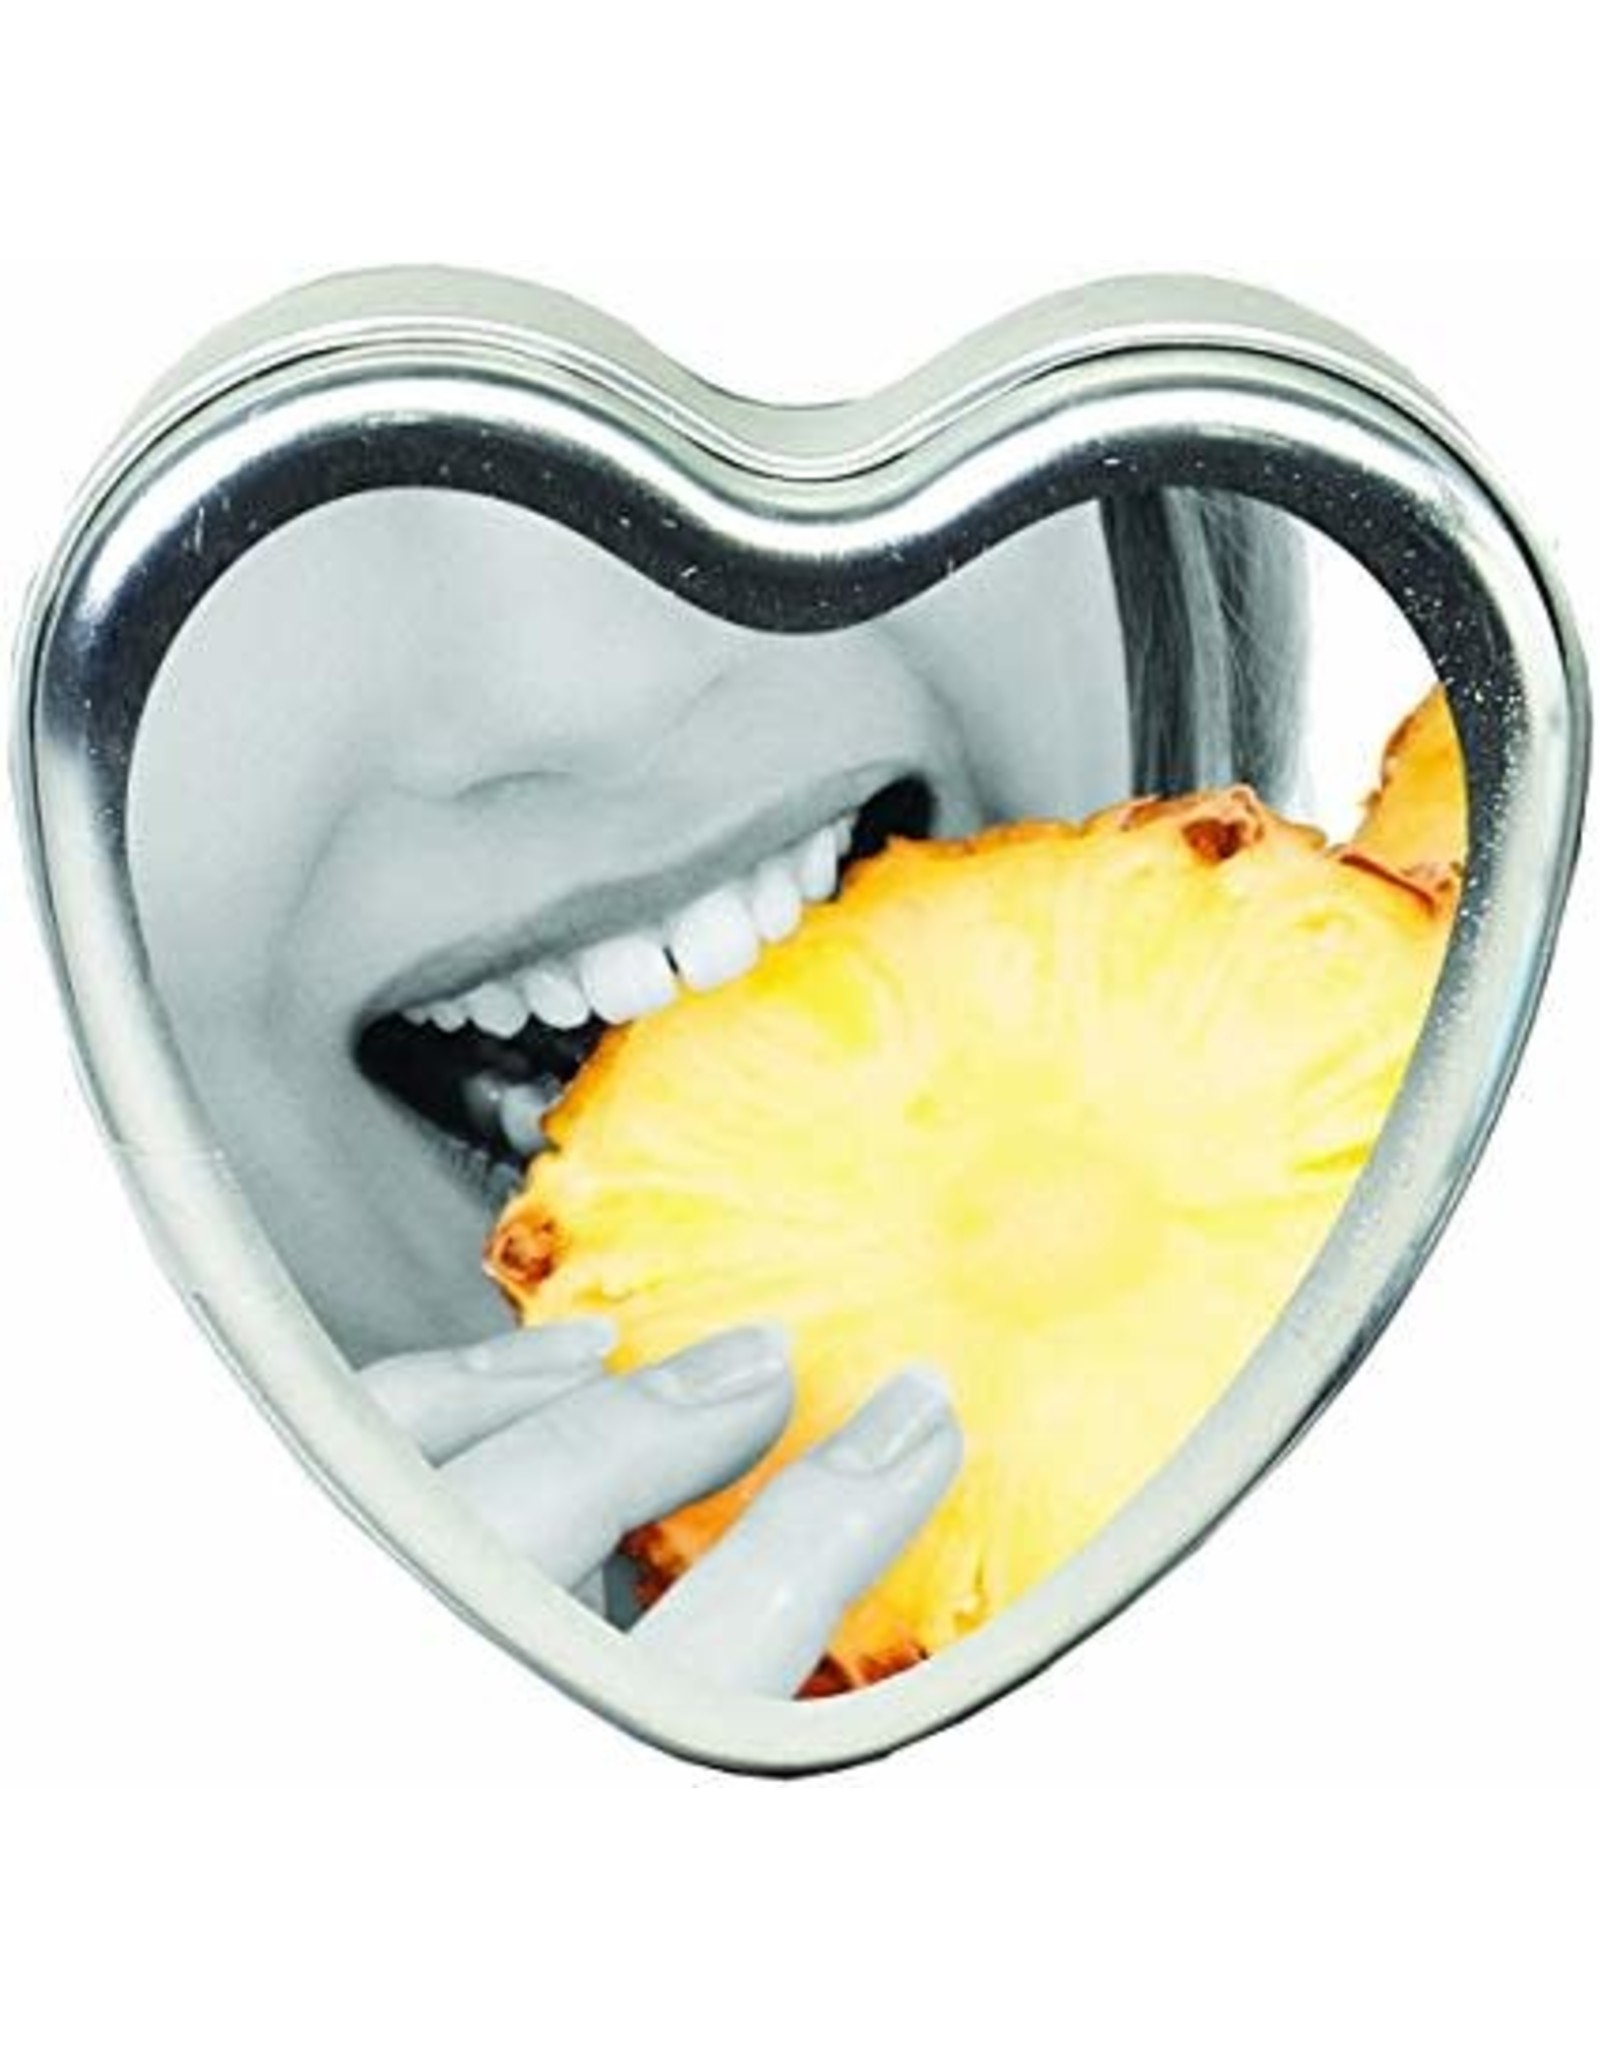 EARTHLY BODY - EDIBLE TROPICAL HEART CANDLES 4OZ - PINEAPPLE